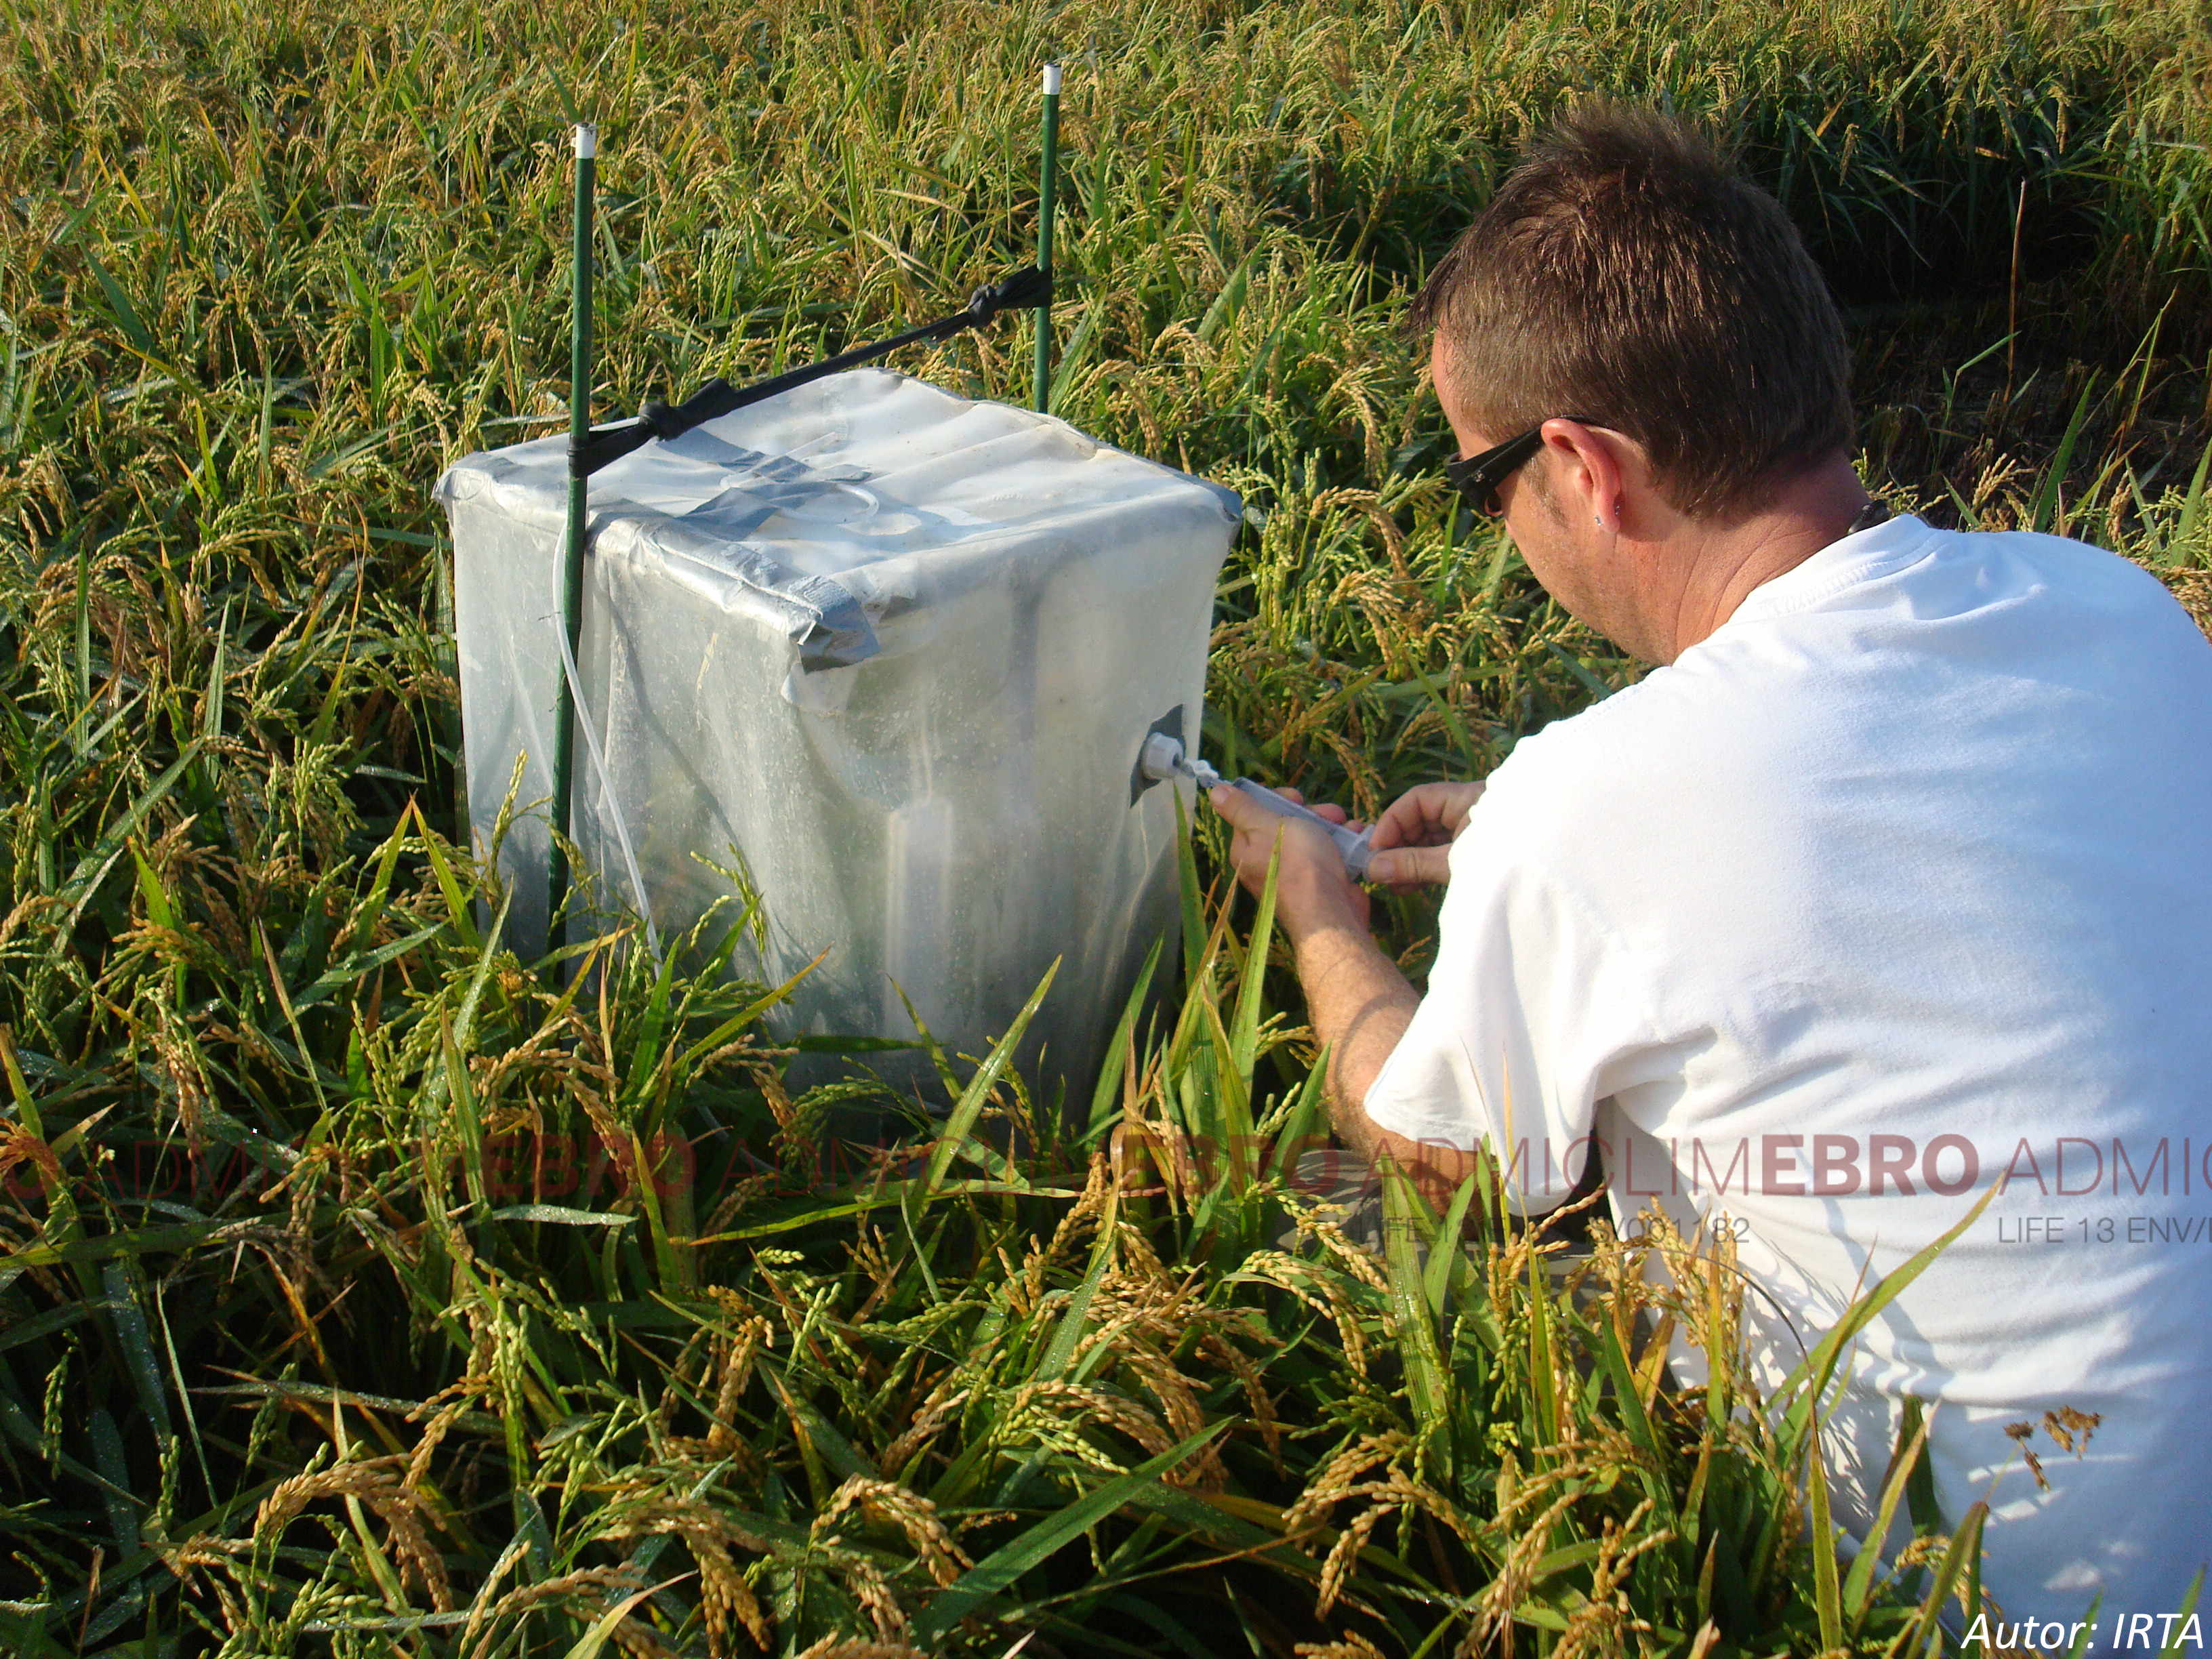 B4.- Optimization of greenhouse gases emissions in the rice fields of the Ebro Delta.